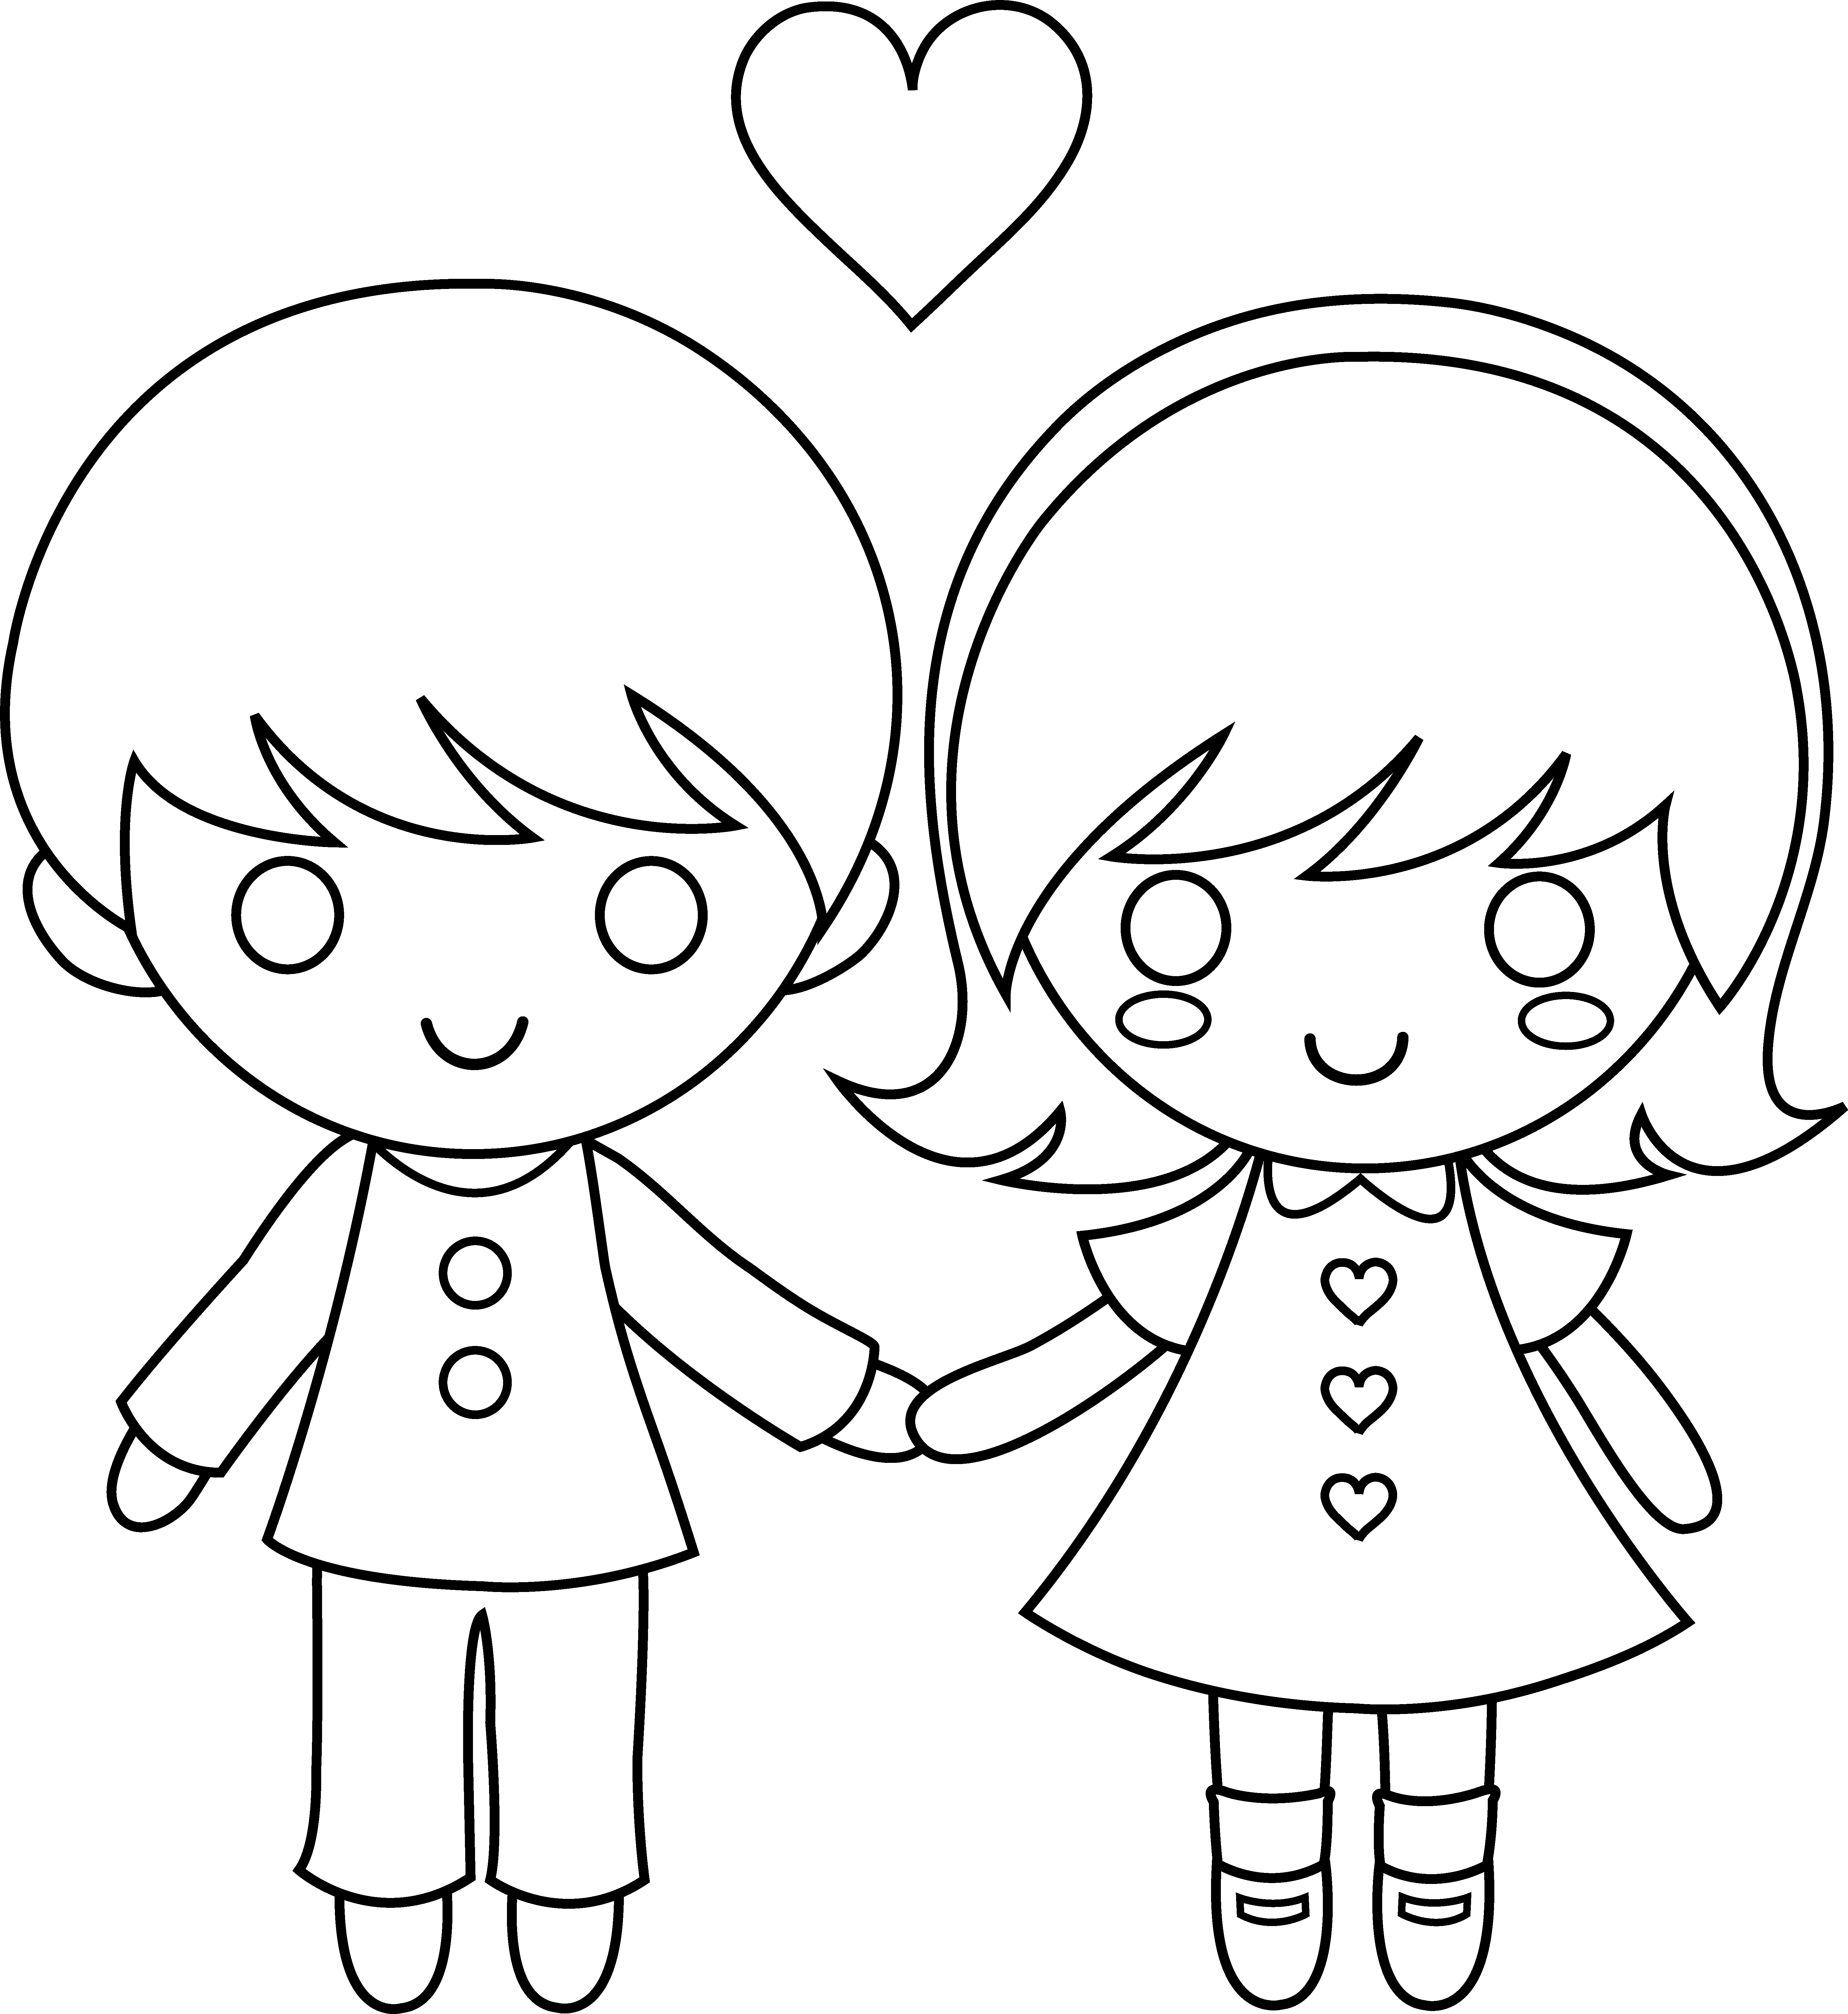 Pumpkin clipart black and white jep banner download happy valentine's day clip art black and white | Kids class ... banner download